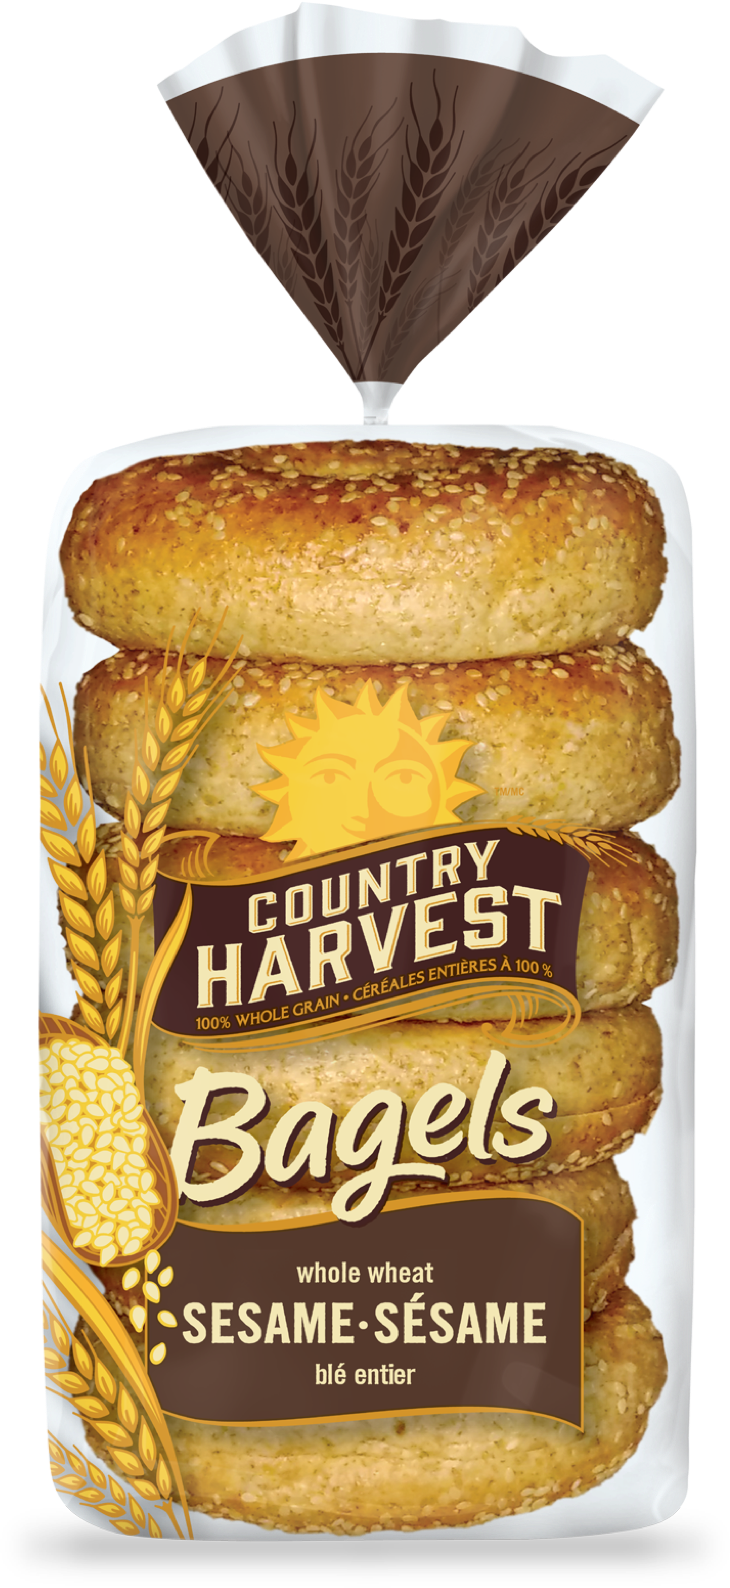 Whole sesame country harvest. Wheat clipart wheat product